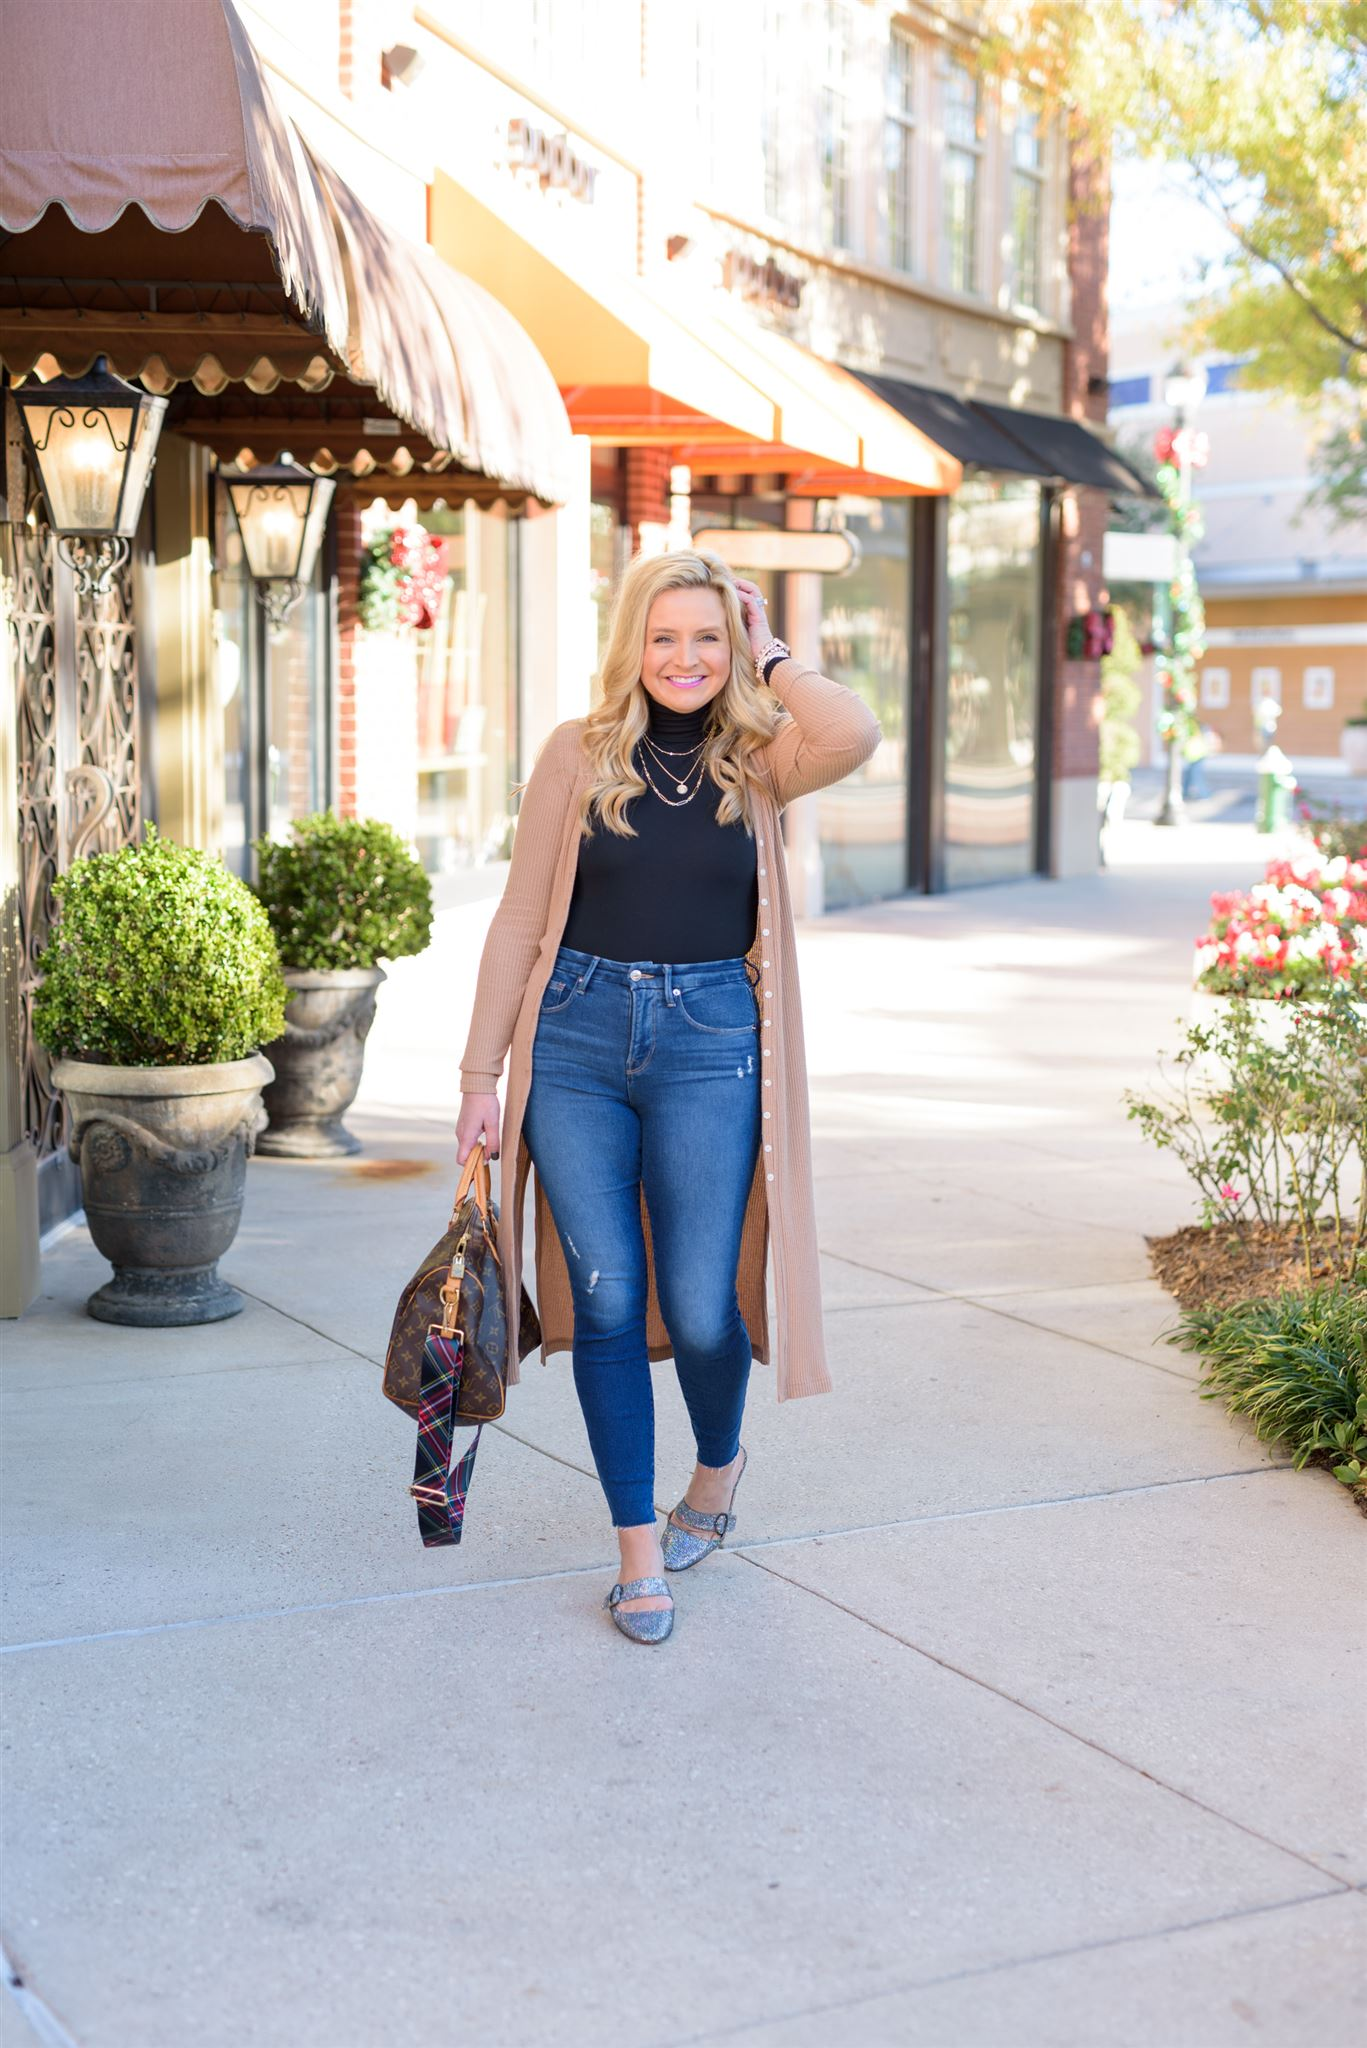 December Outfits by popular Houston fashion blog, Fancy Ashley: image of a woman standing outside and wearing a black turtleneck shirt, tan long line cardigan, jeans, and sliver slide flats while holding a Louis Vuitton bag.